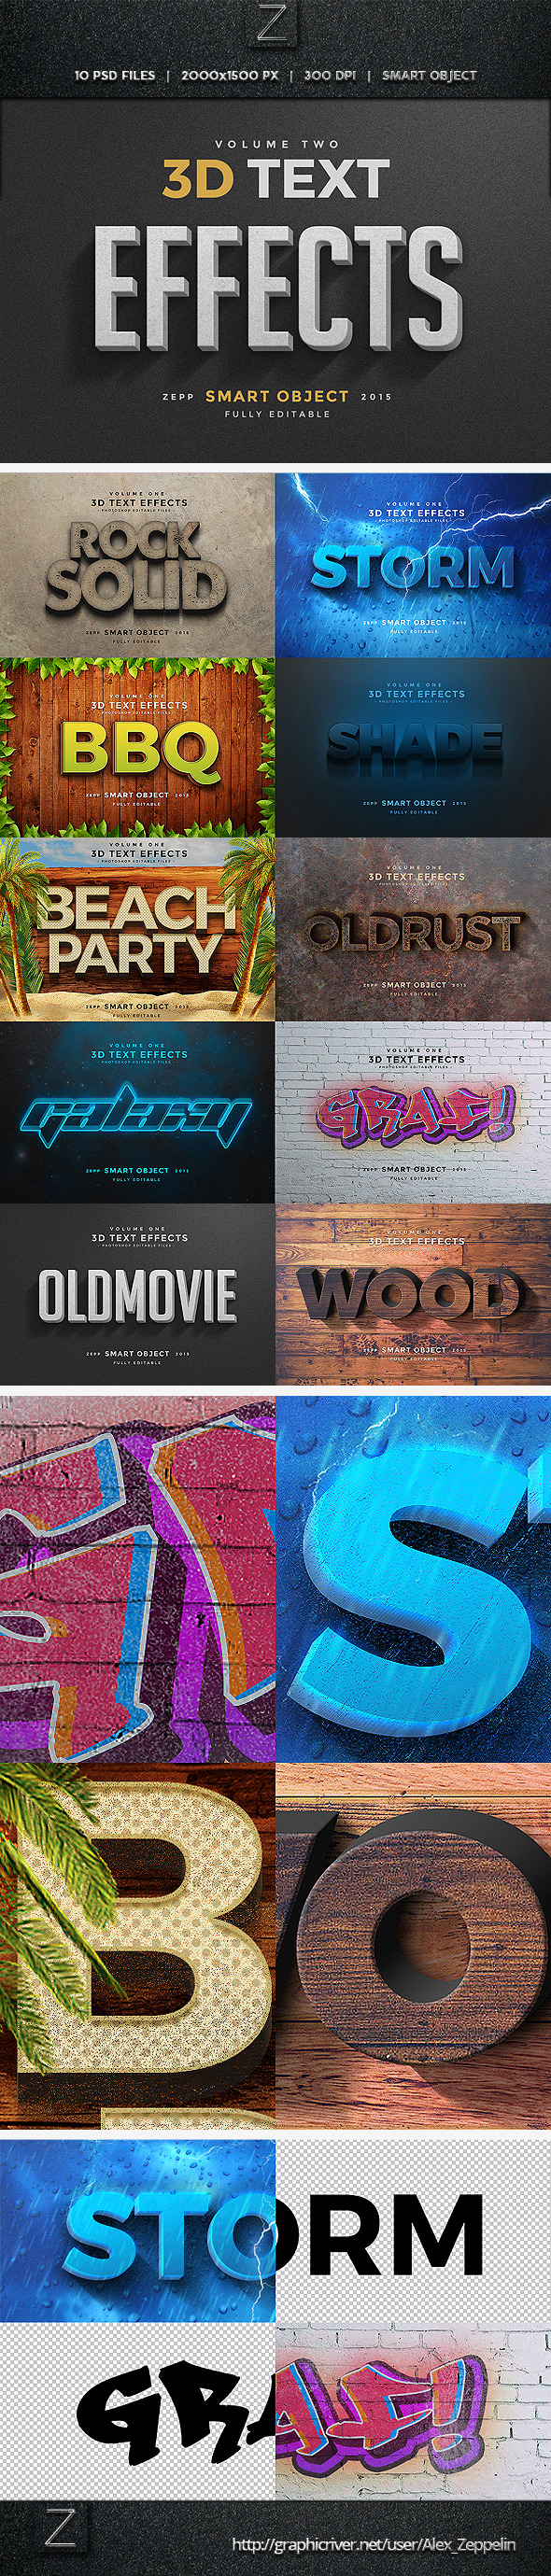 GraphicRiver 3D Text Effects Vol.2 11477715